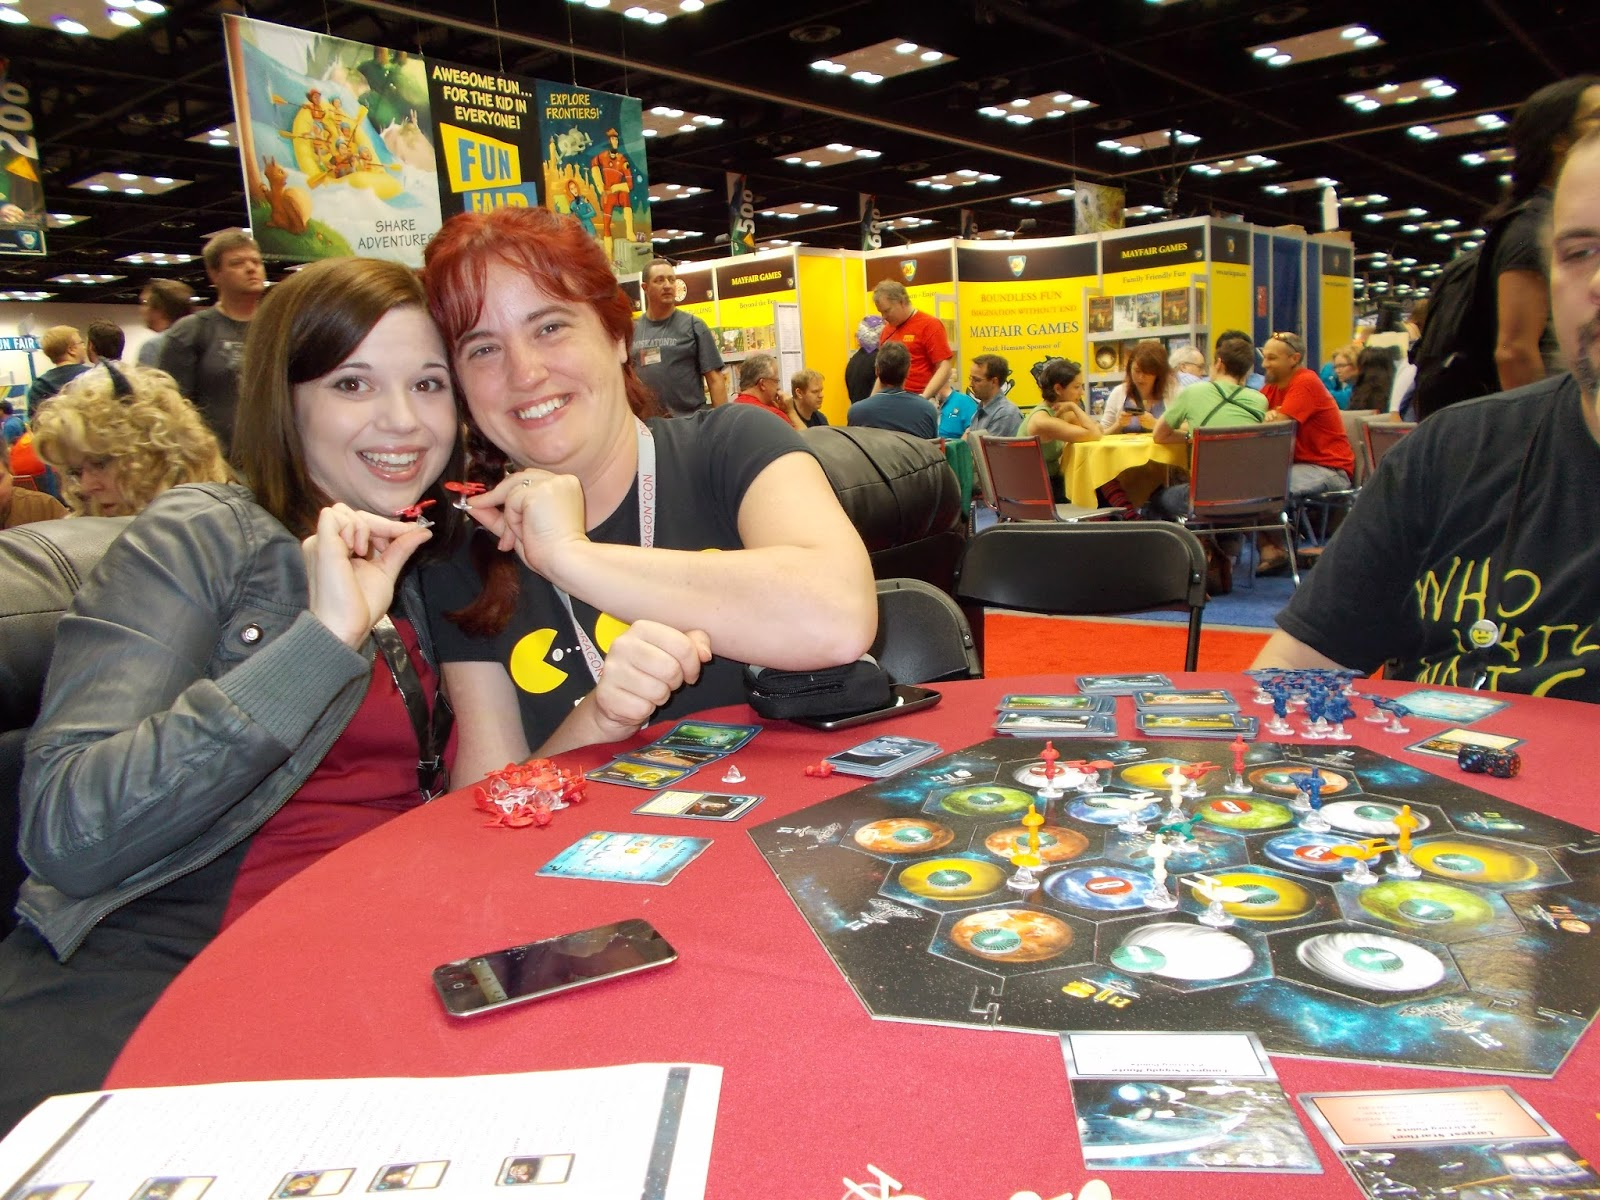 Dreaming About Other Worlds Event Gen Con August 14th